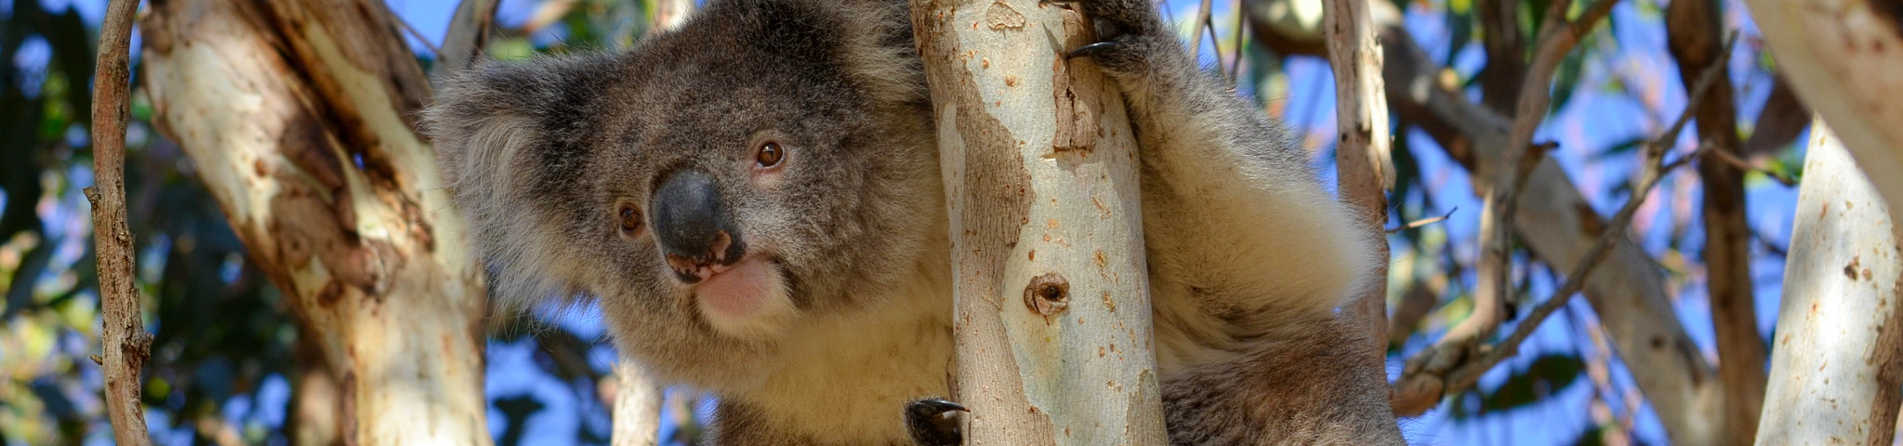 Are there Koalas on Kangaroo Island?